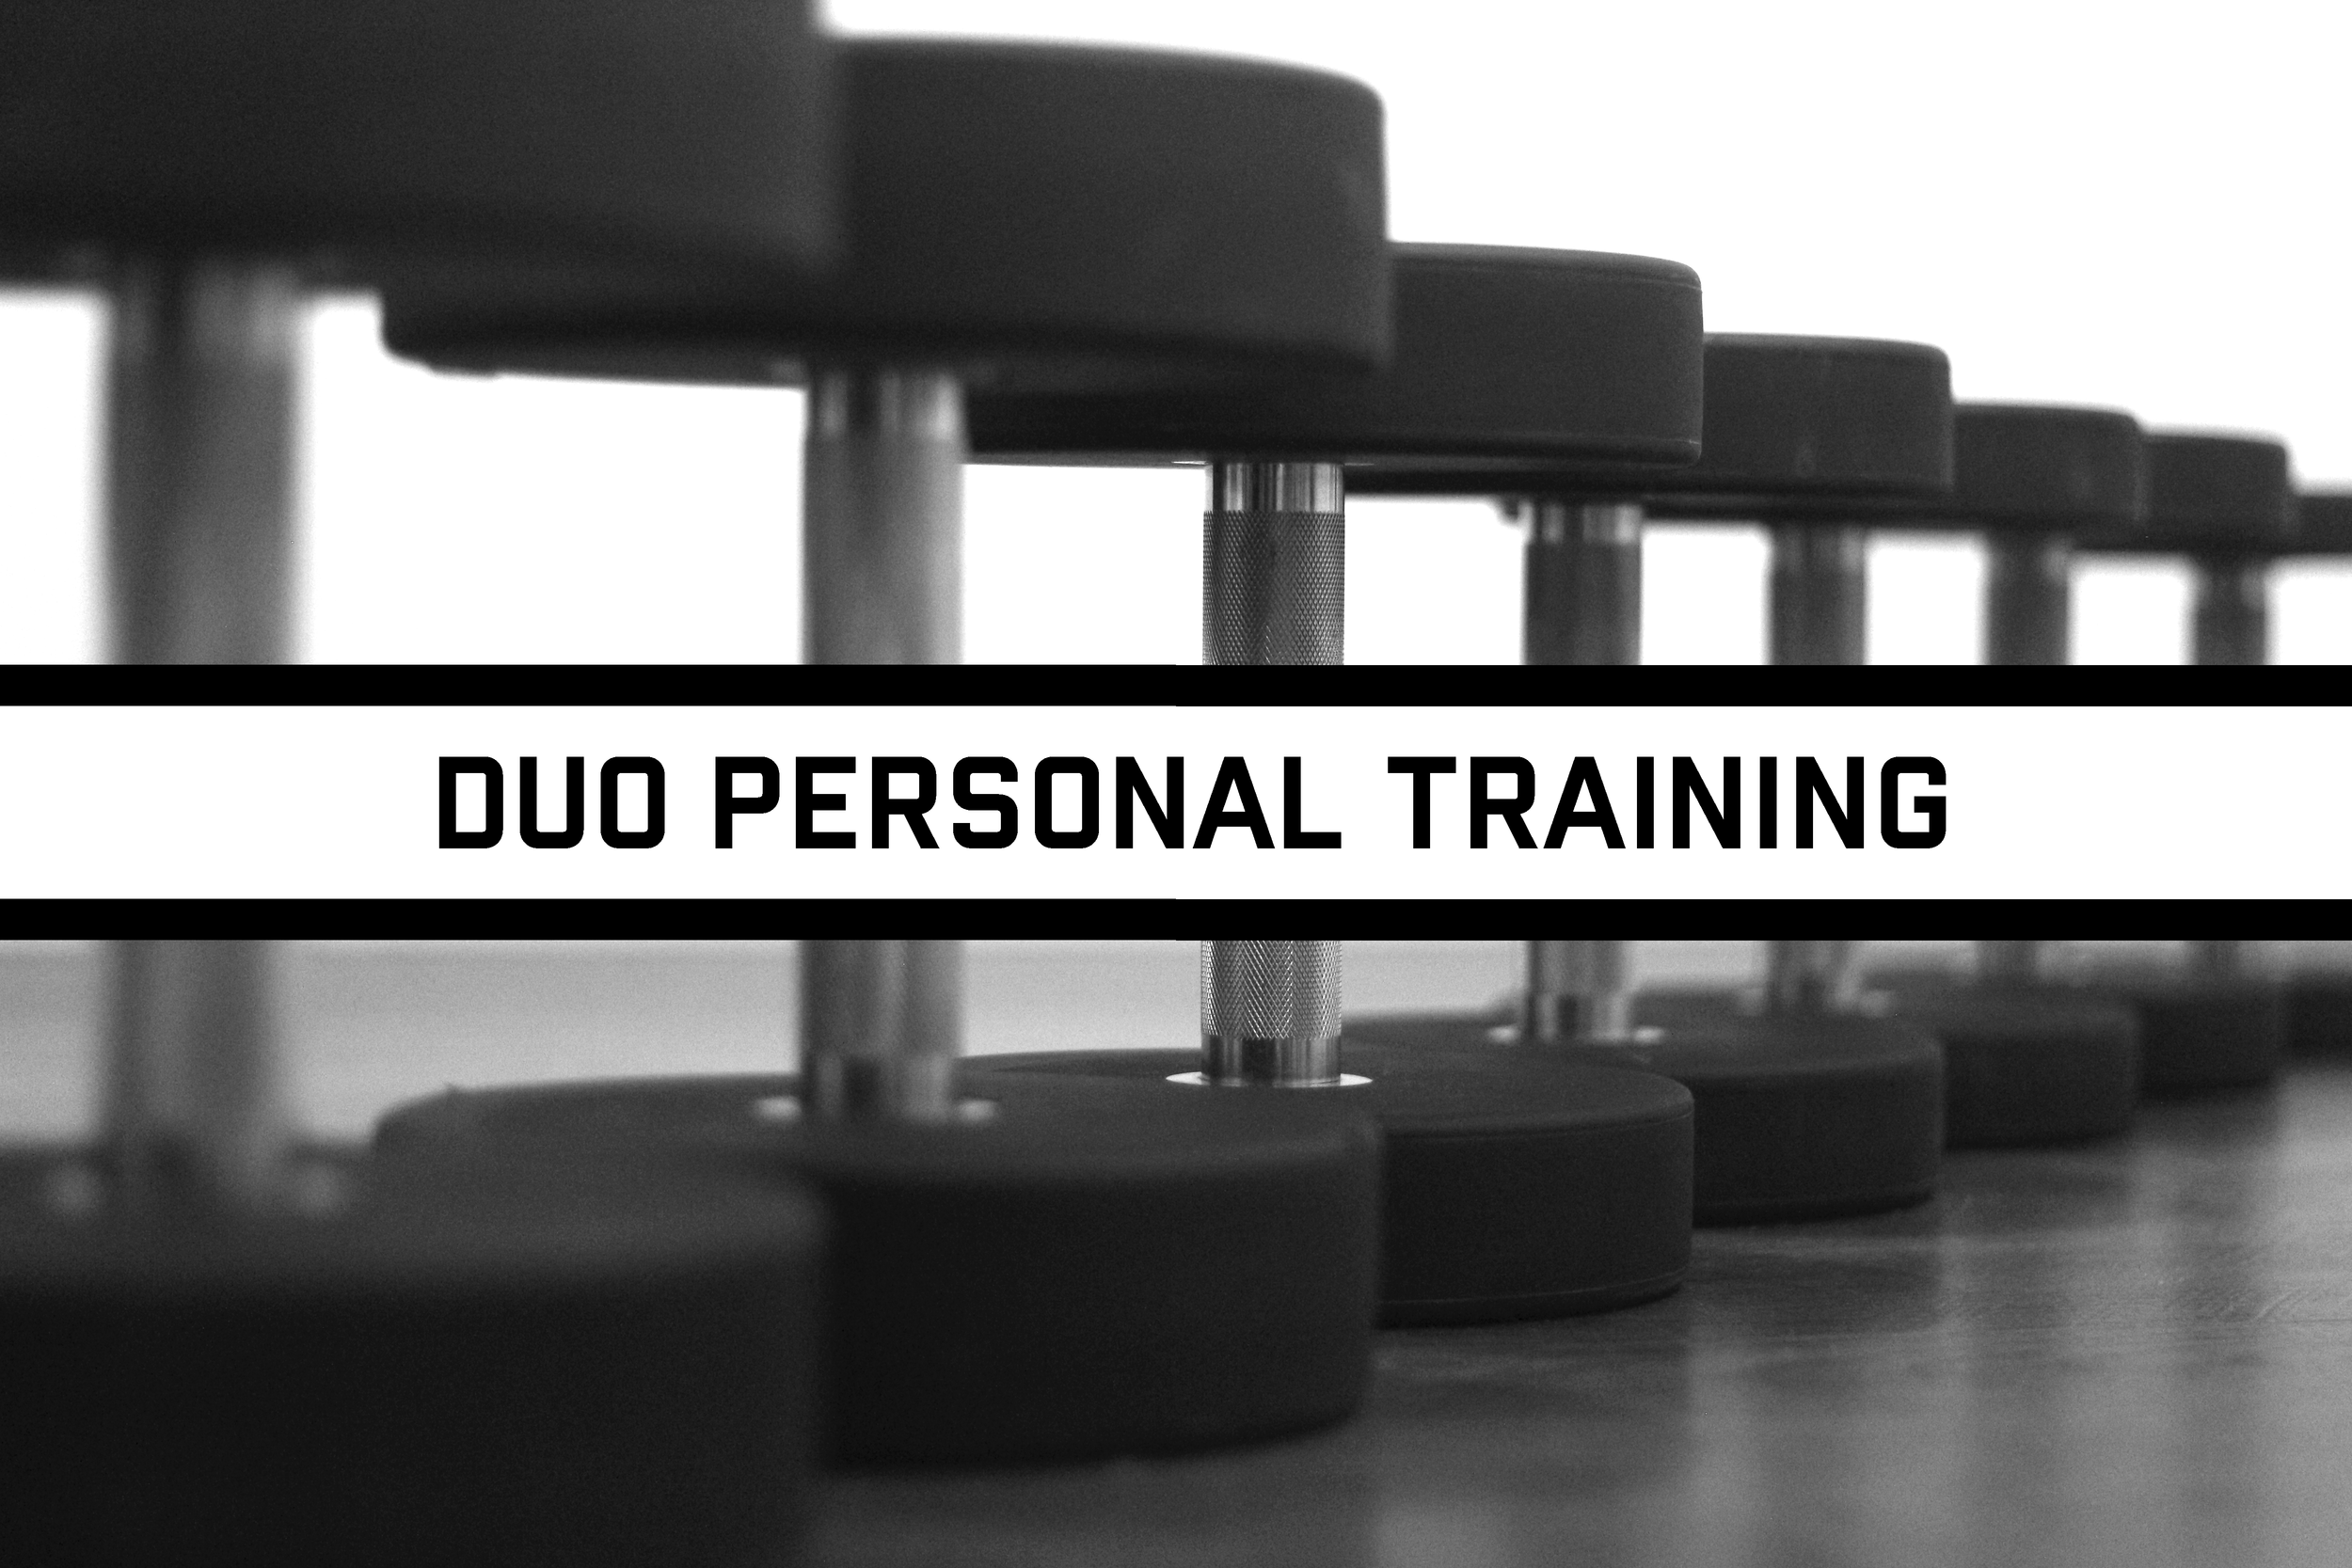 De-Ruijter-Personal-Training---Duo-Personal-Training.png